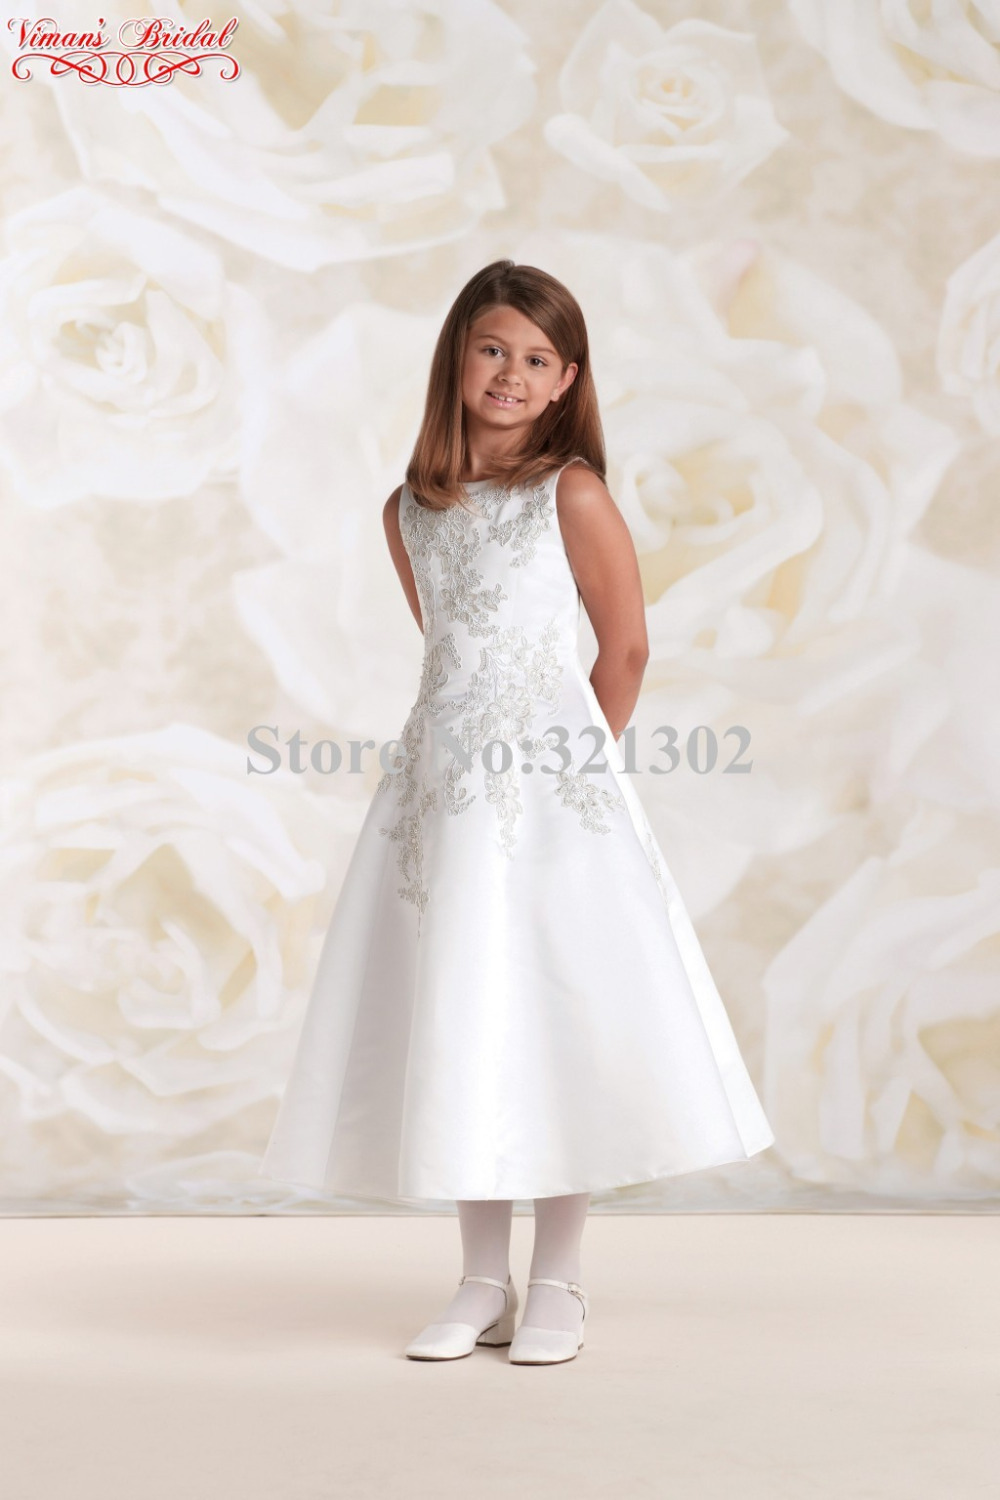 09 icdn.ru girls.com Aliexpress.com : Buy 2015 Elegant White Dress For Girls Appliques Lace  Scoop Mid Calf Ball Gown Kids Dresses For Weddings Free Shipping AK12 from  Reliable ...